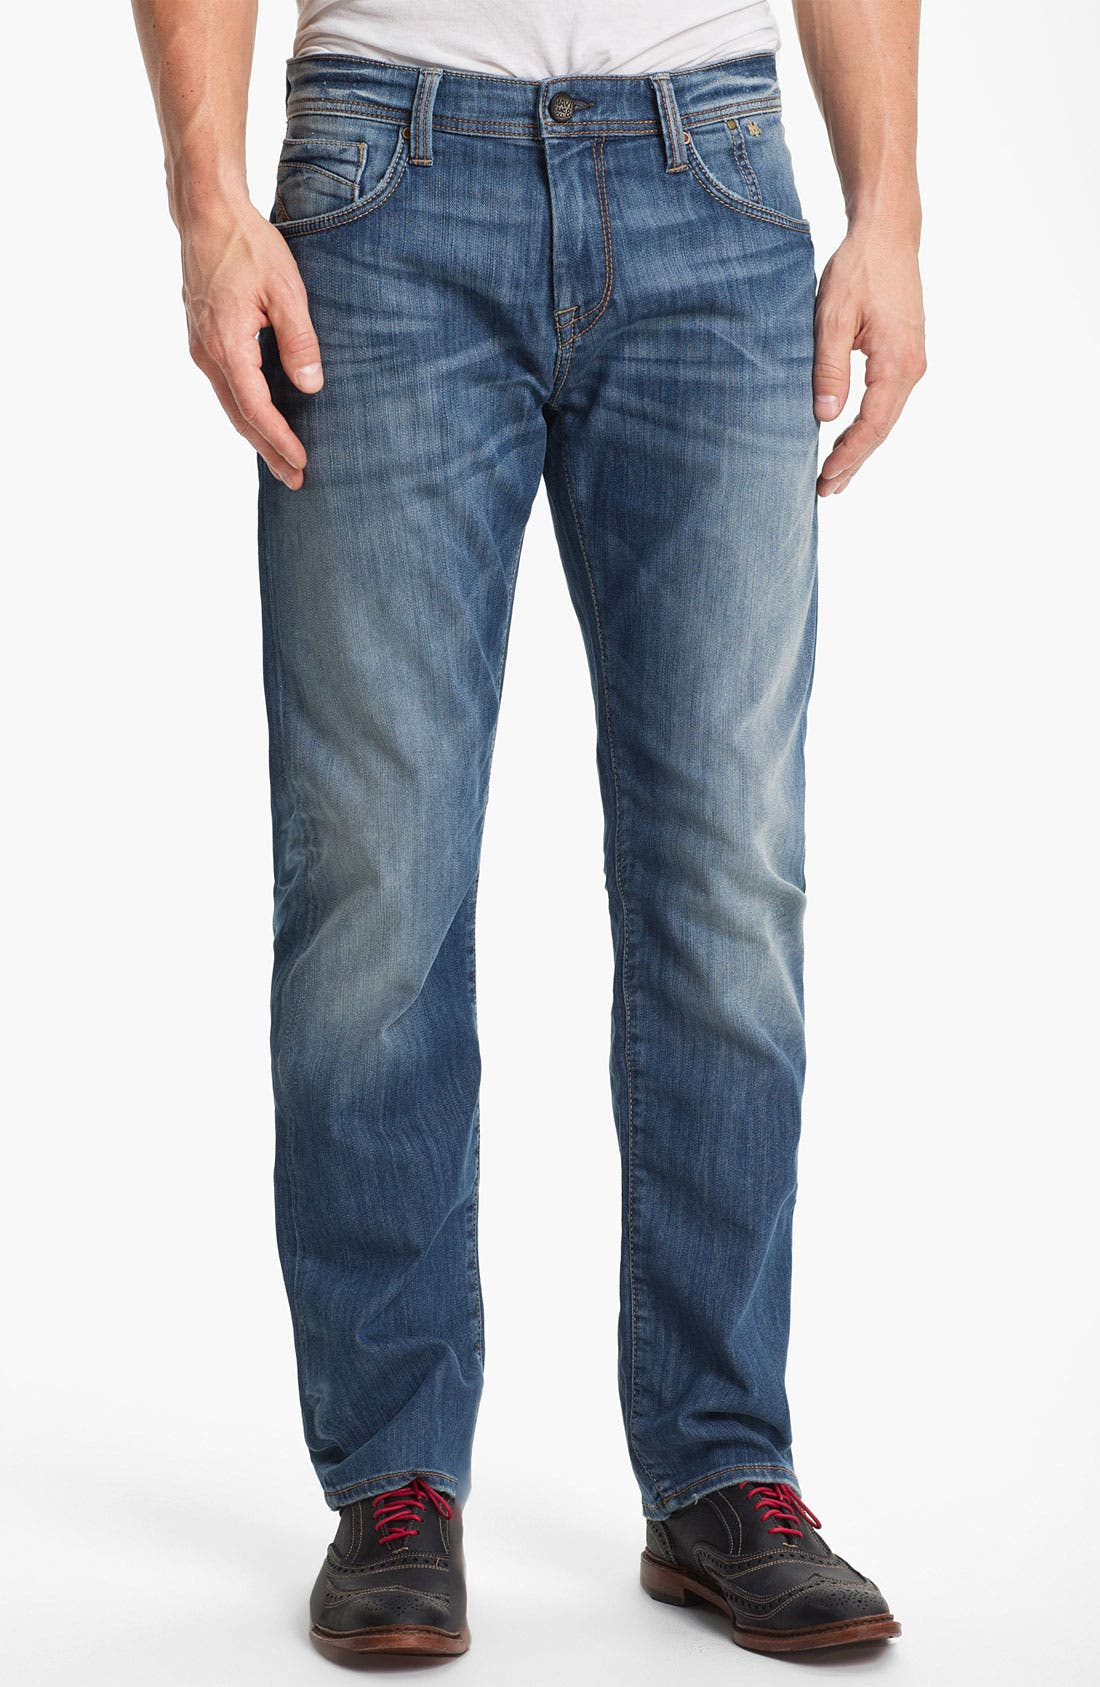 Alternate Image 1 Selected - Mavi Jeans 'Zach' Straight Leg Jeans (Light Cooper)